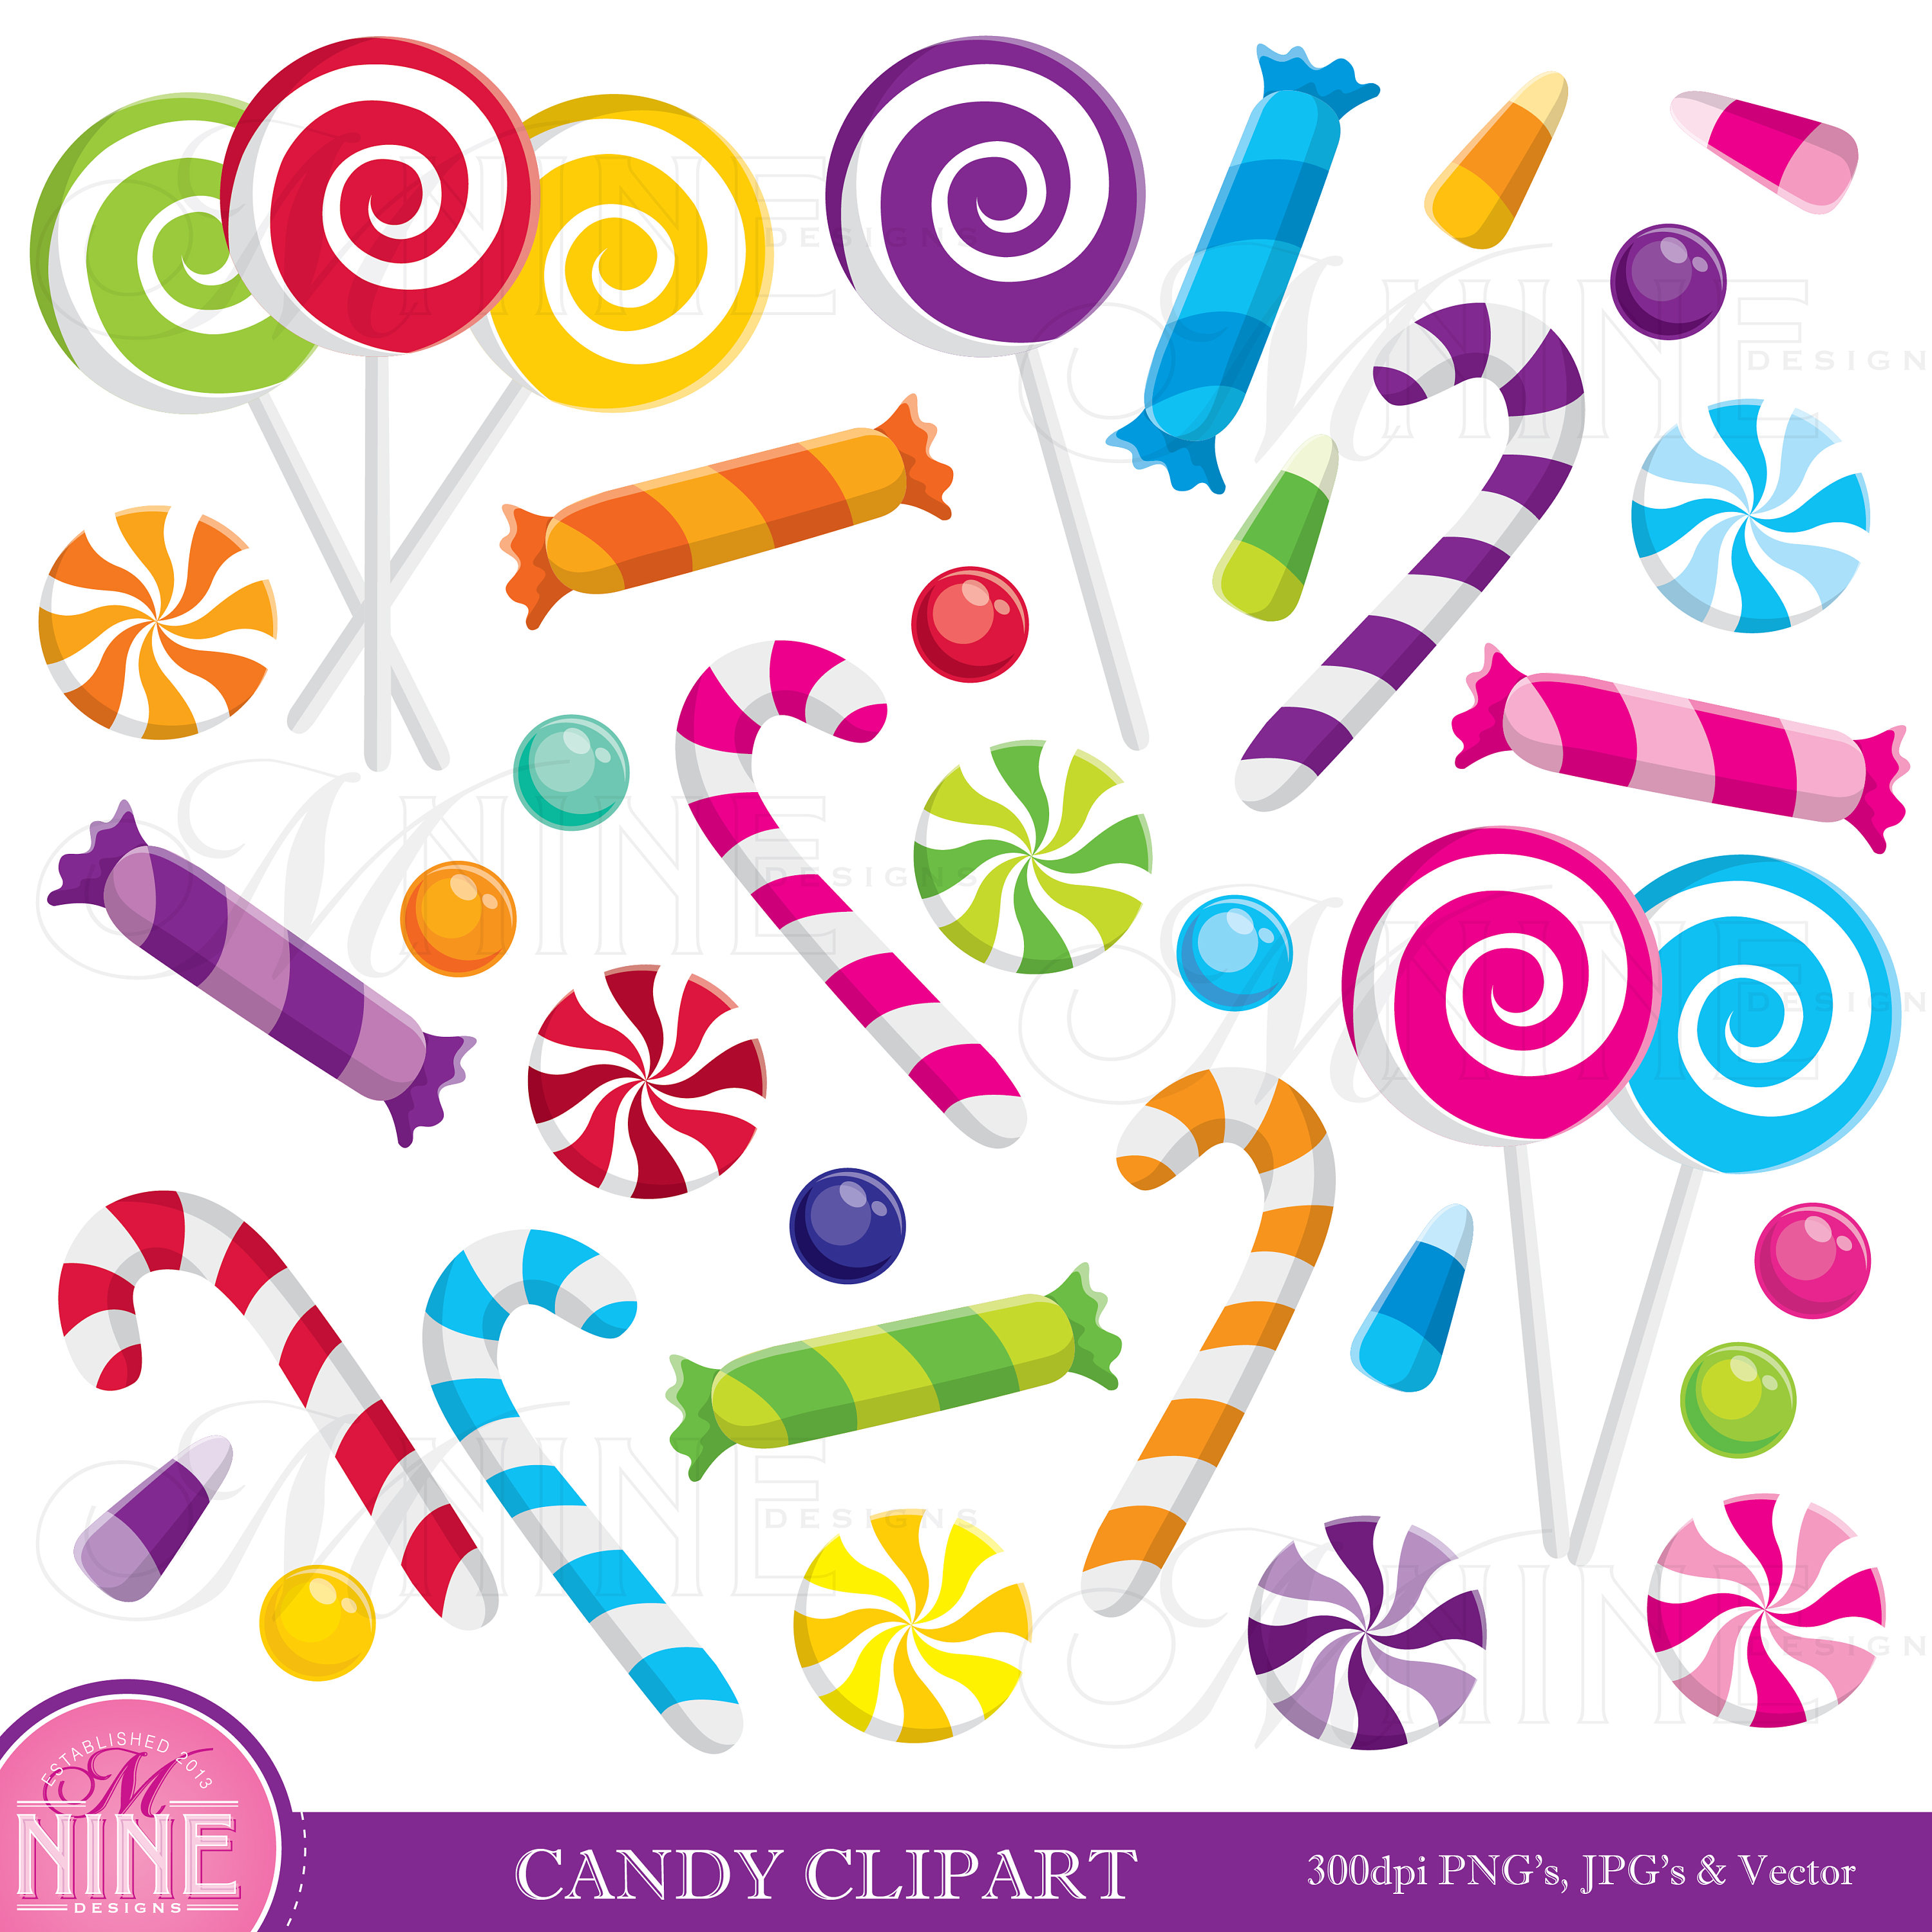 Clip art downloads theme. Candy clipart